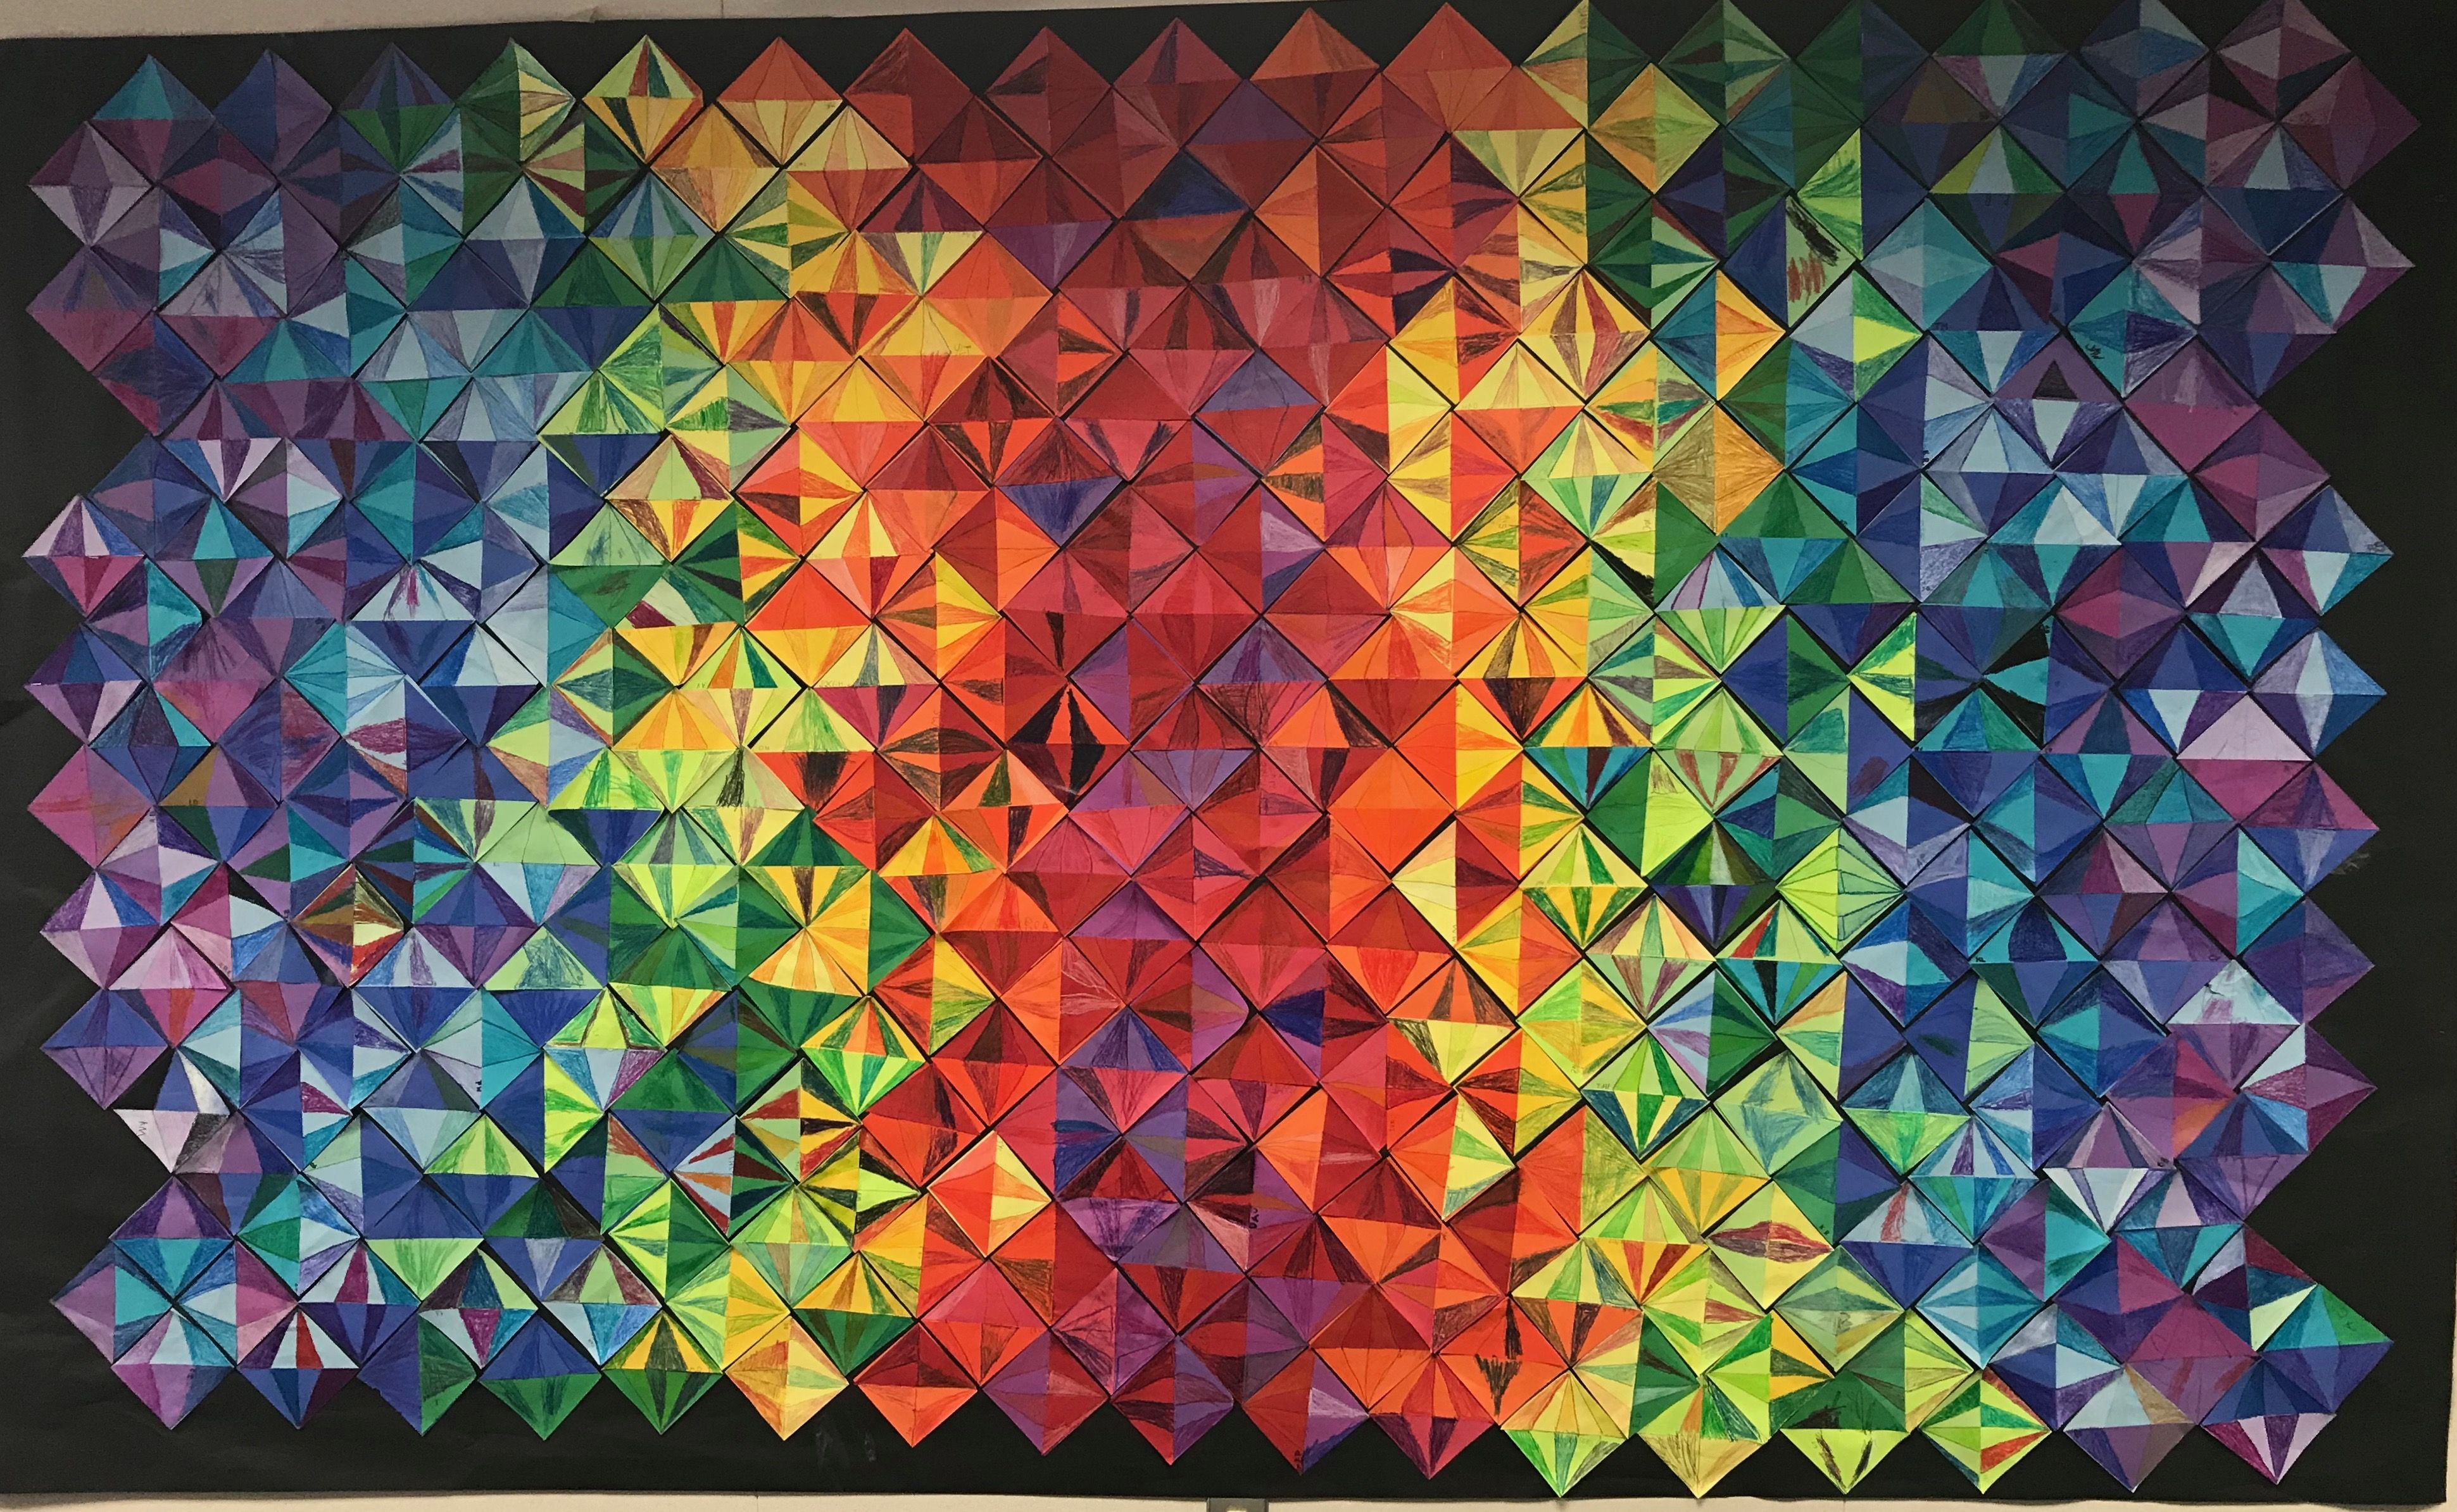 Elementary school collaborative paper quilt inspired by